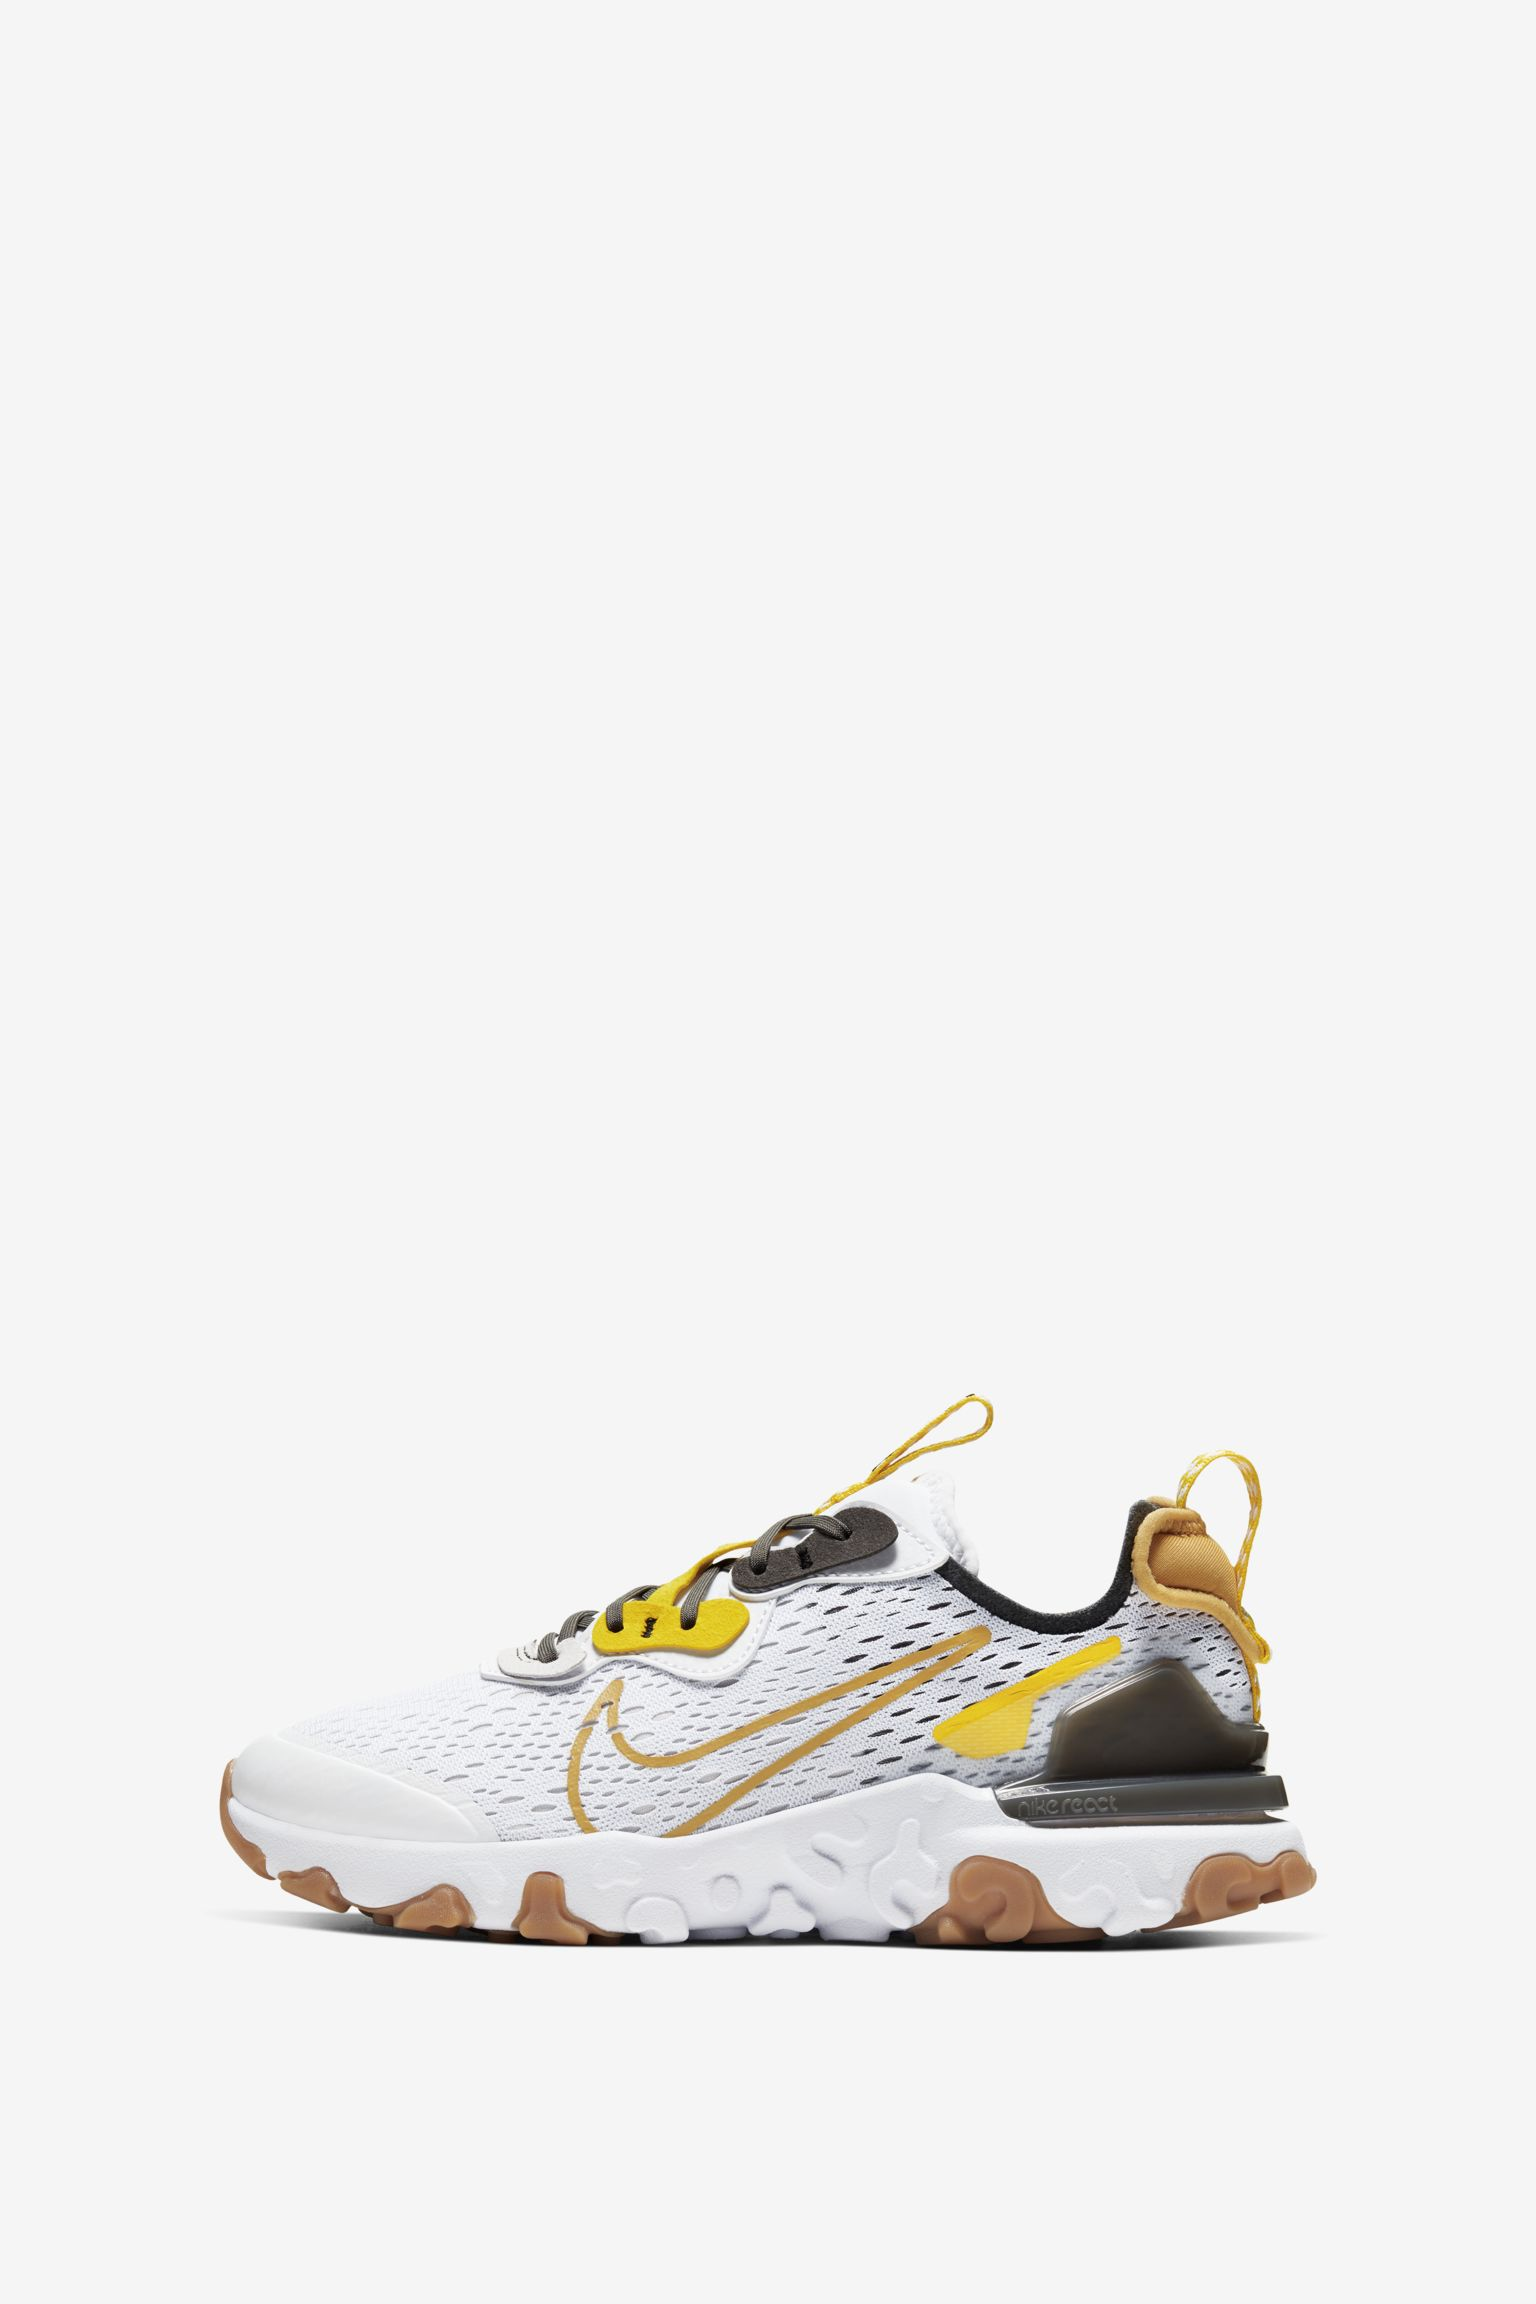 Nike React Vision 'Honeycomb' Release Date. Nike SNKRS